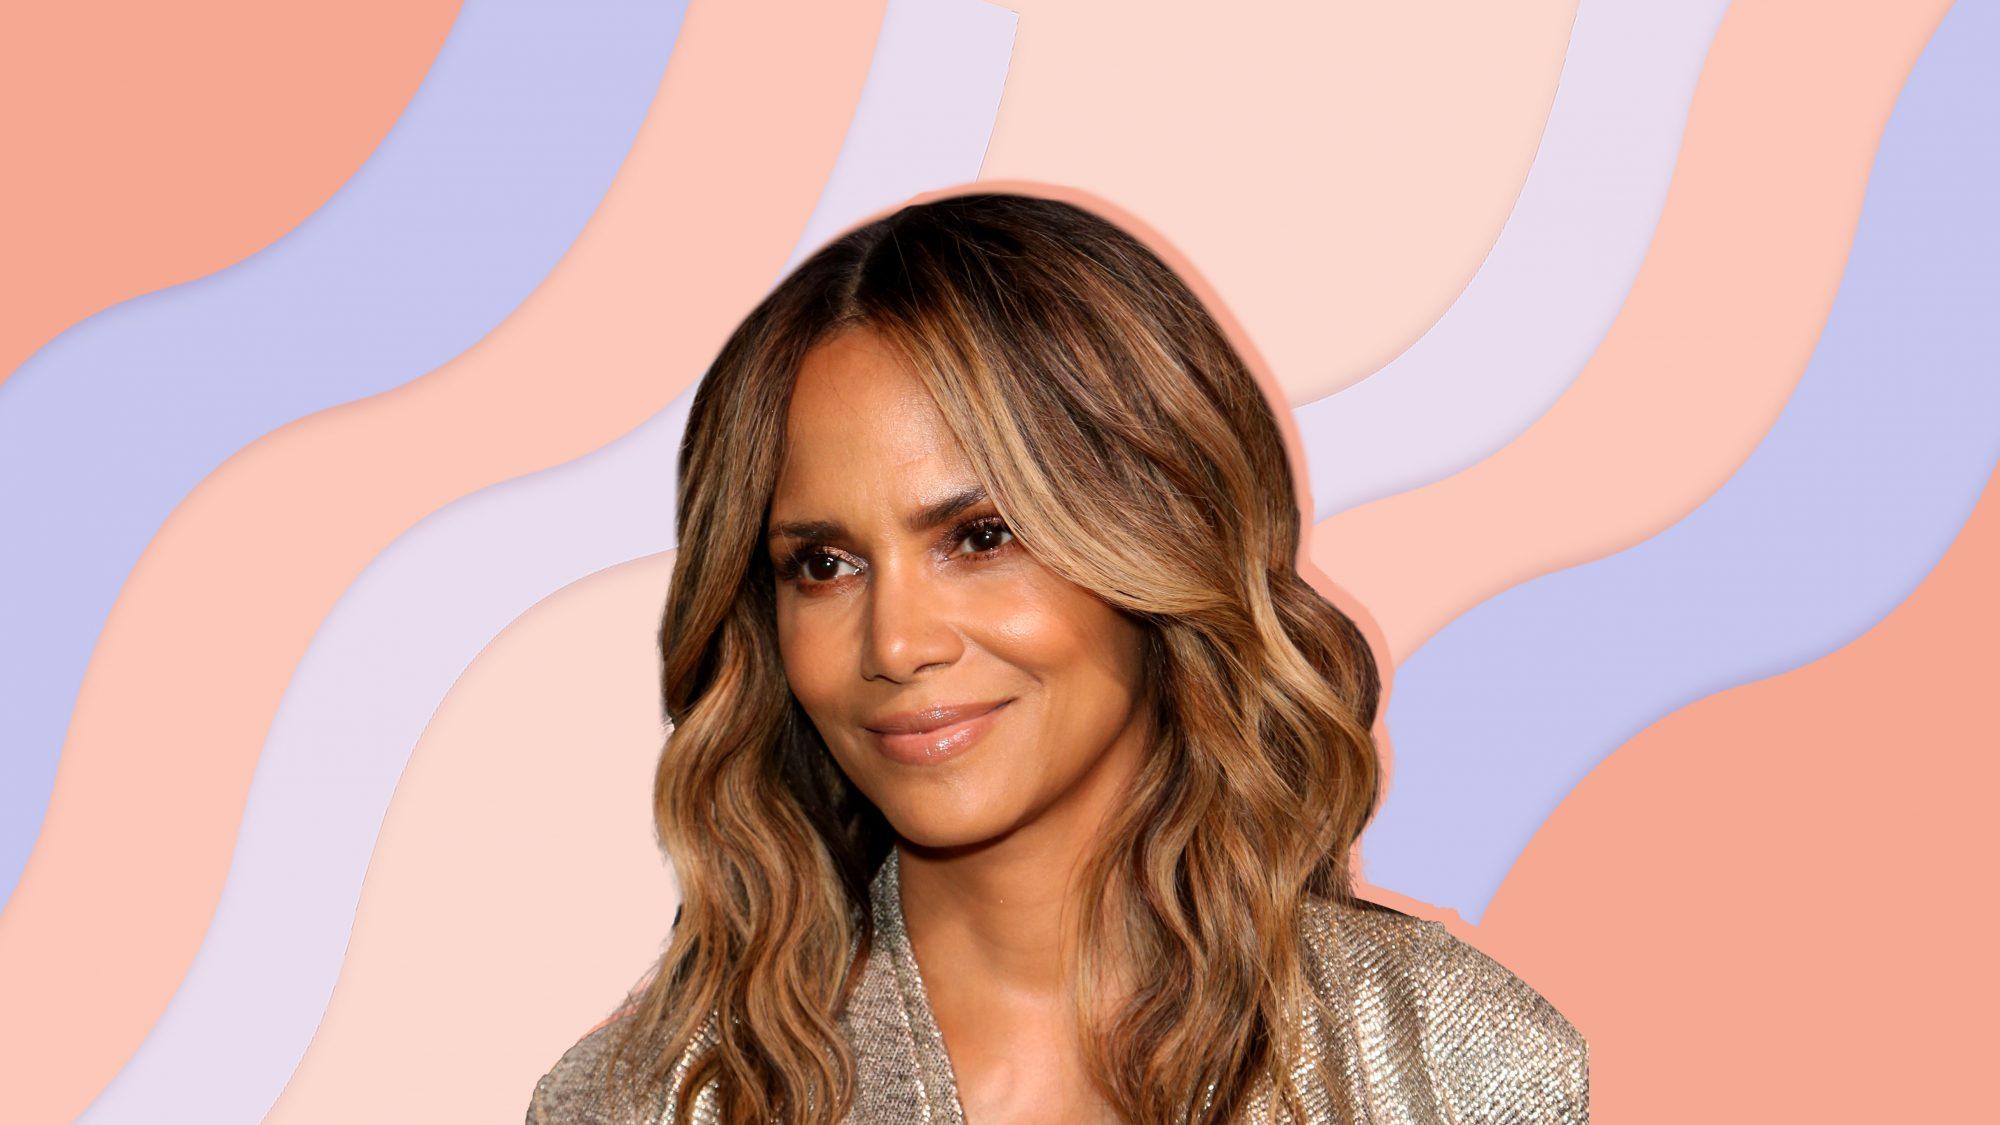 Halle Berry Shares Photo of 6-Pack Abs on Instagram—and Her Fans are Freaking Out